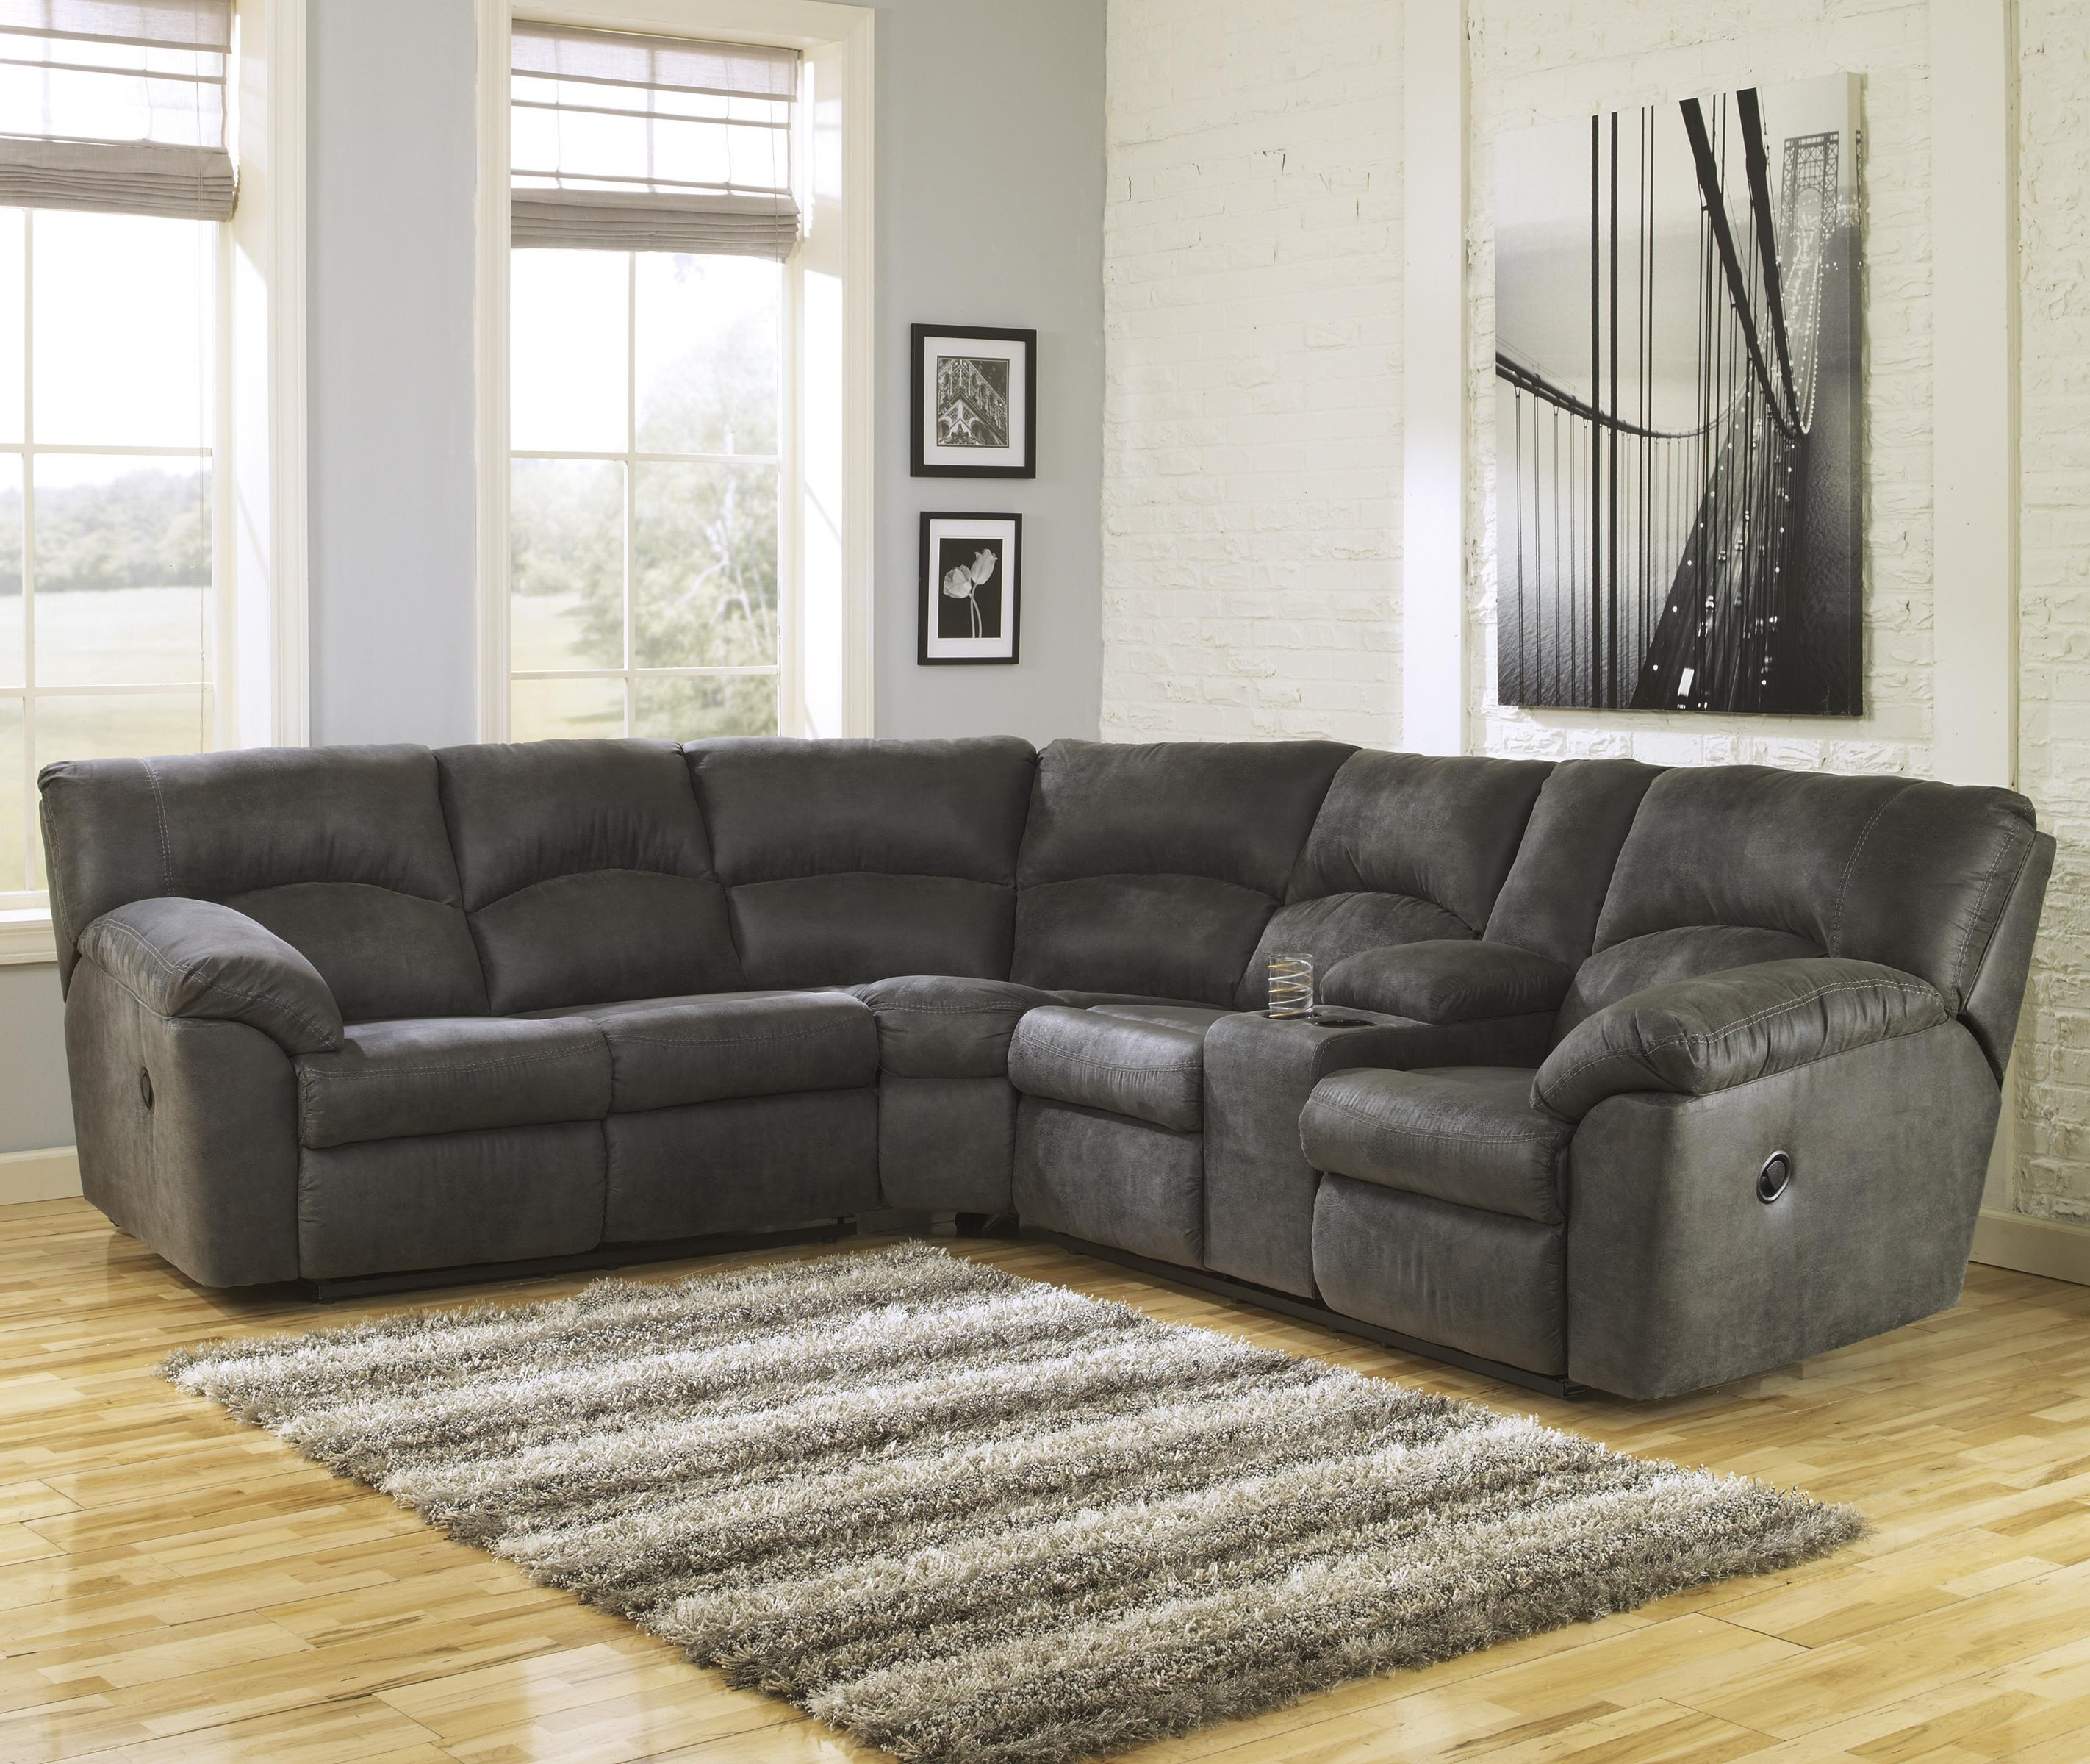 Signature Design By Ashley Tambo   Pewter2 Piece Reclining Corner Sectional  ...